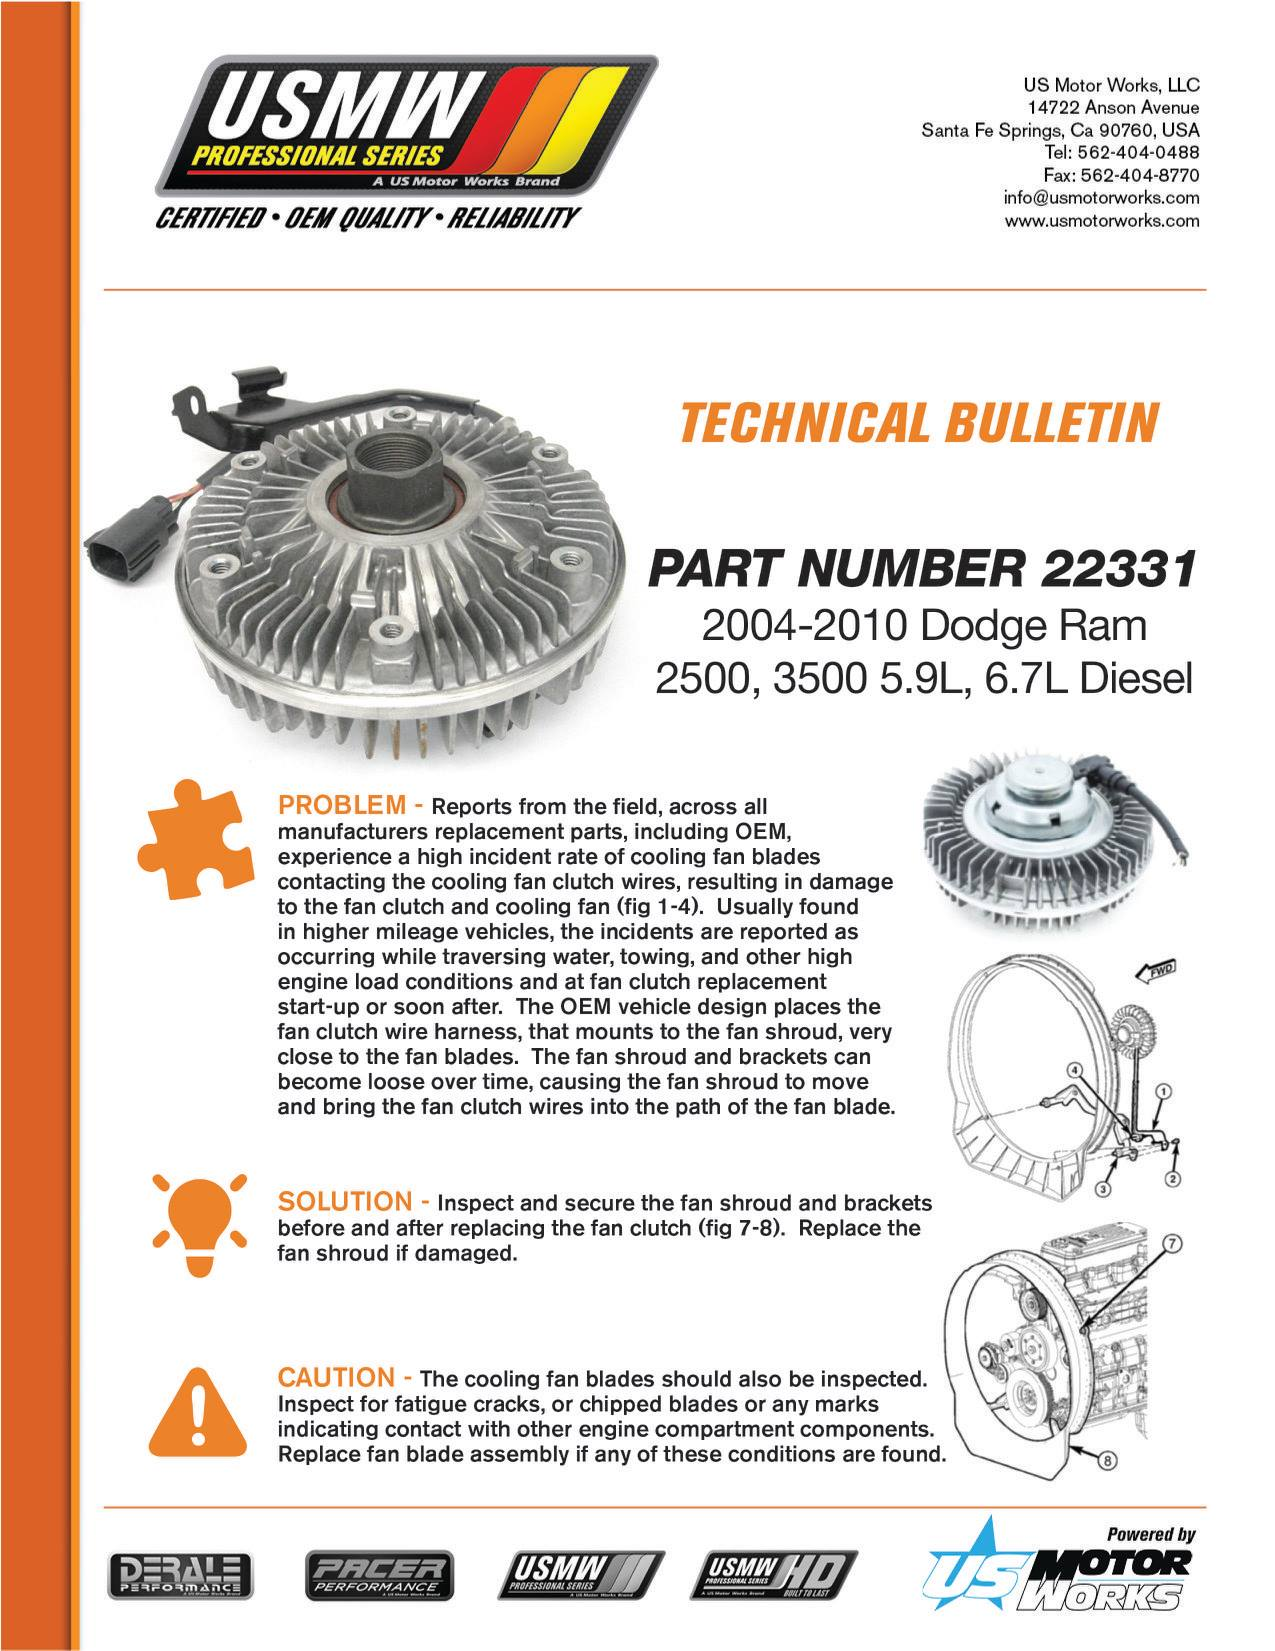 hight resolution of  of cooling fan blades contacting the cooling fan clutch wires resulting in damage to the fan clutch and cooling fan here is a quick bulletin on how to